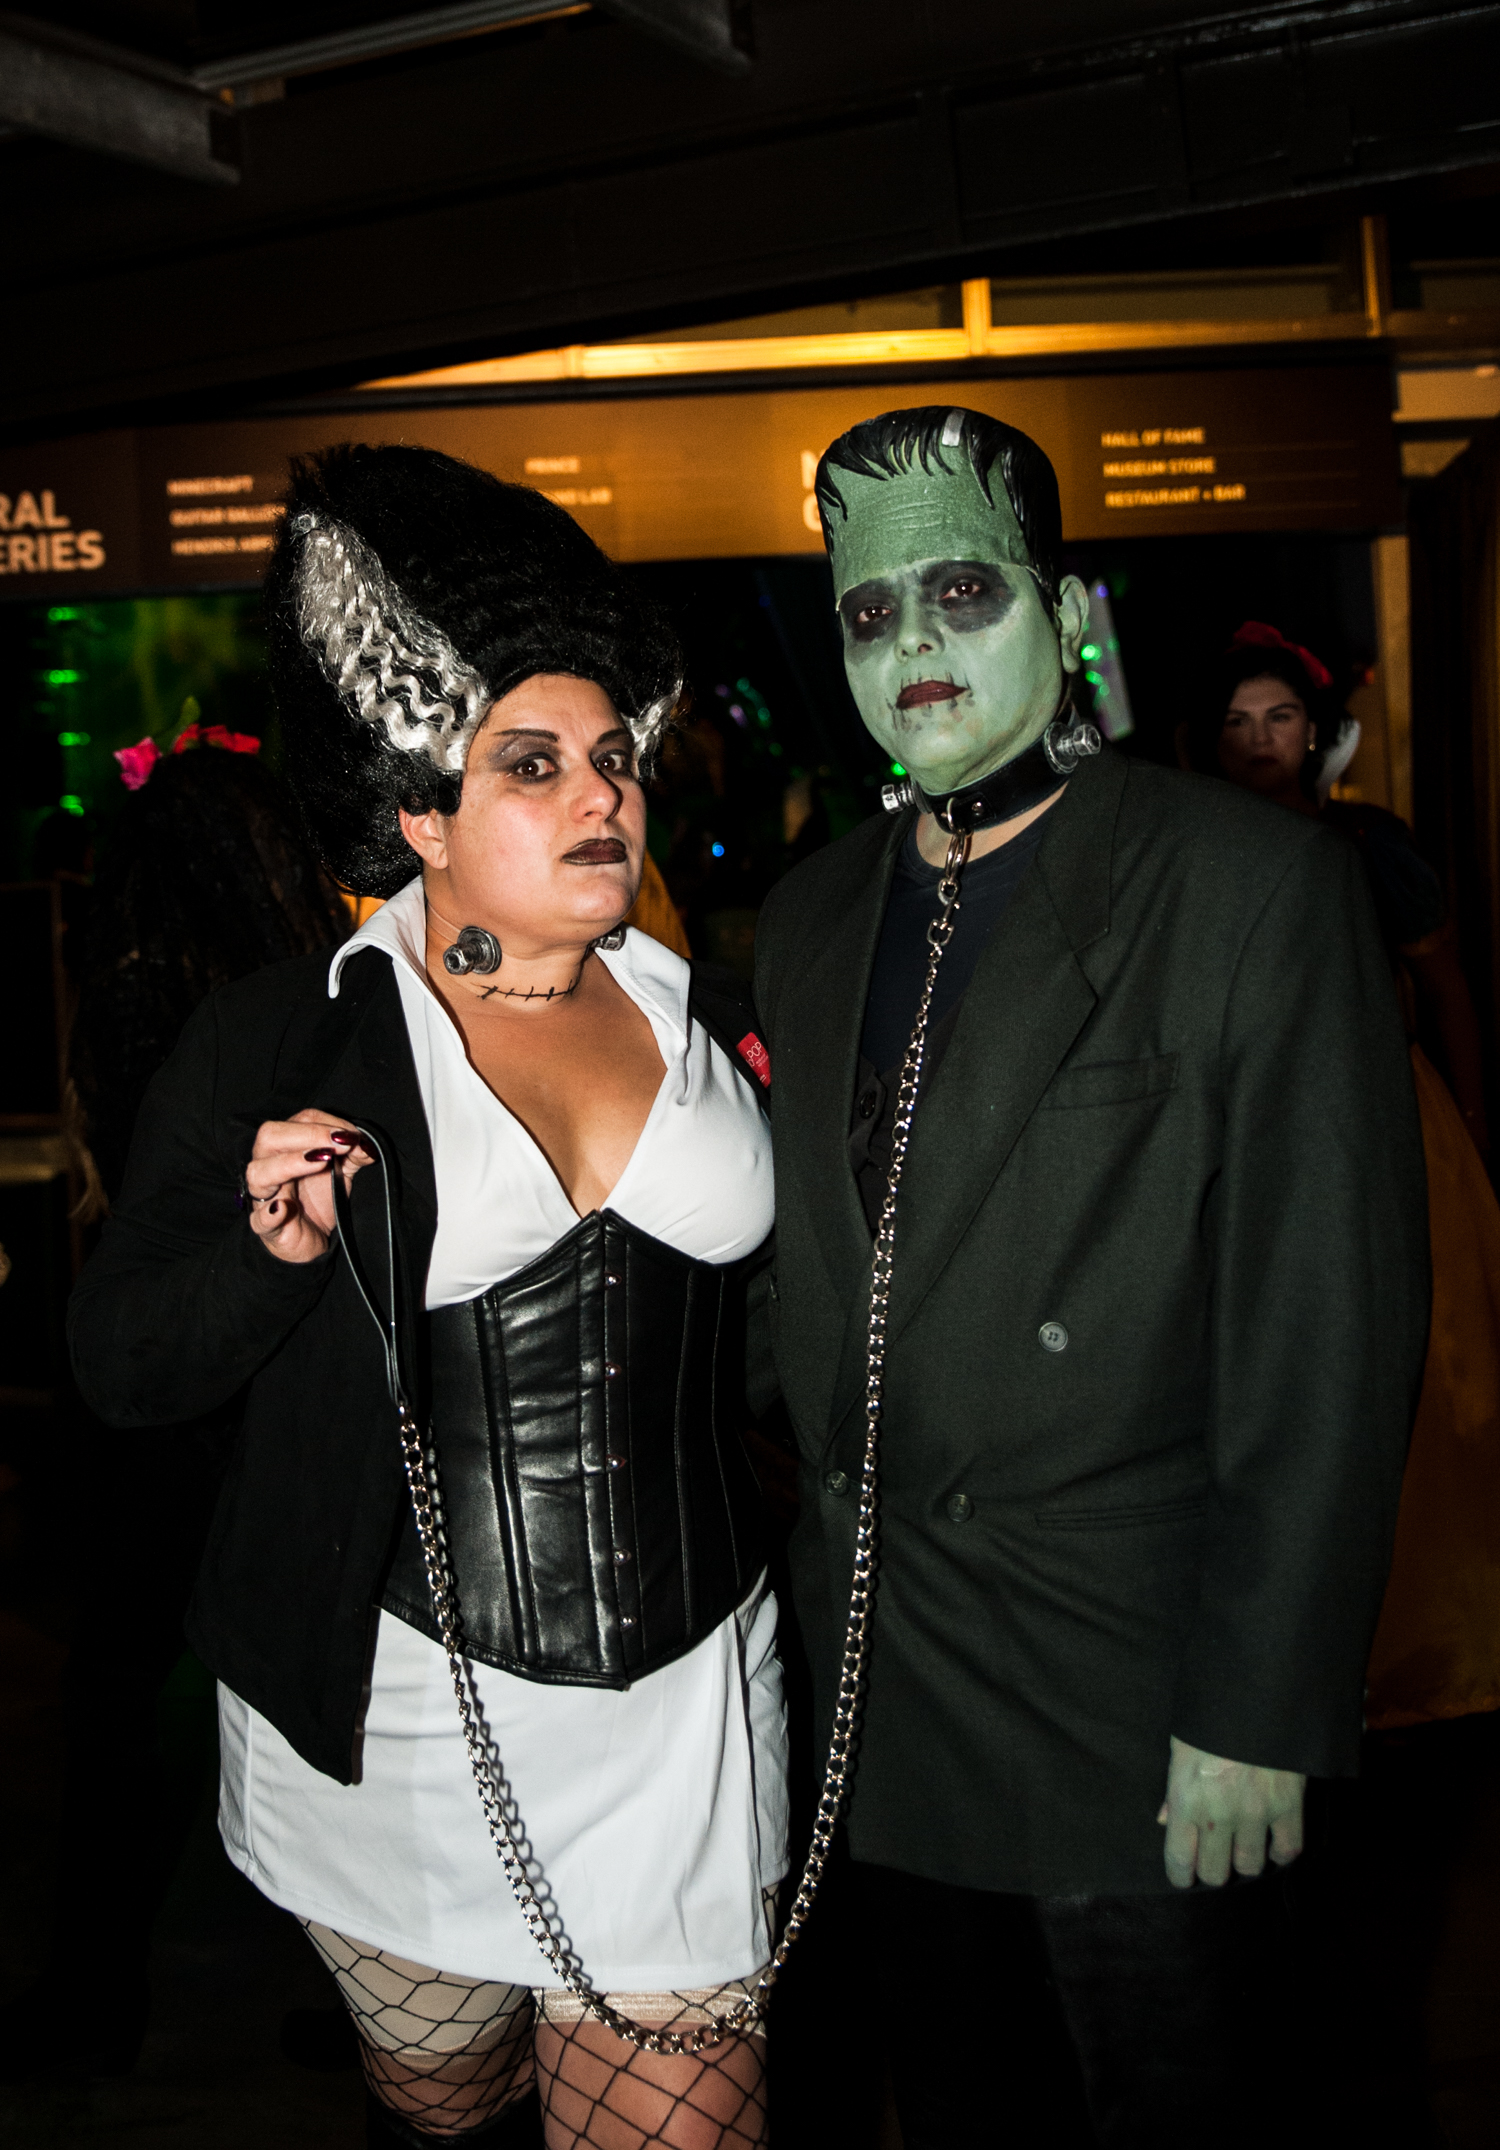 For the 9th year in a row, Seattle's Museum of Pop Culture (MoPOP) threw their epic Halloween party, where attendees came dressed to impress (err, terrify?). The 21+ event included a costume contest with a $750 cash prize from Champion's Party Supply, a Scared to Death puzzle-solving exhibition, spooky DJ, horror film series, and an interactive science fair to make all your evil scientist nightmares come true. (Image: Elizabeth Crook / Seattle Refined)